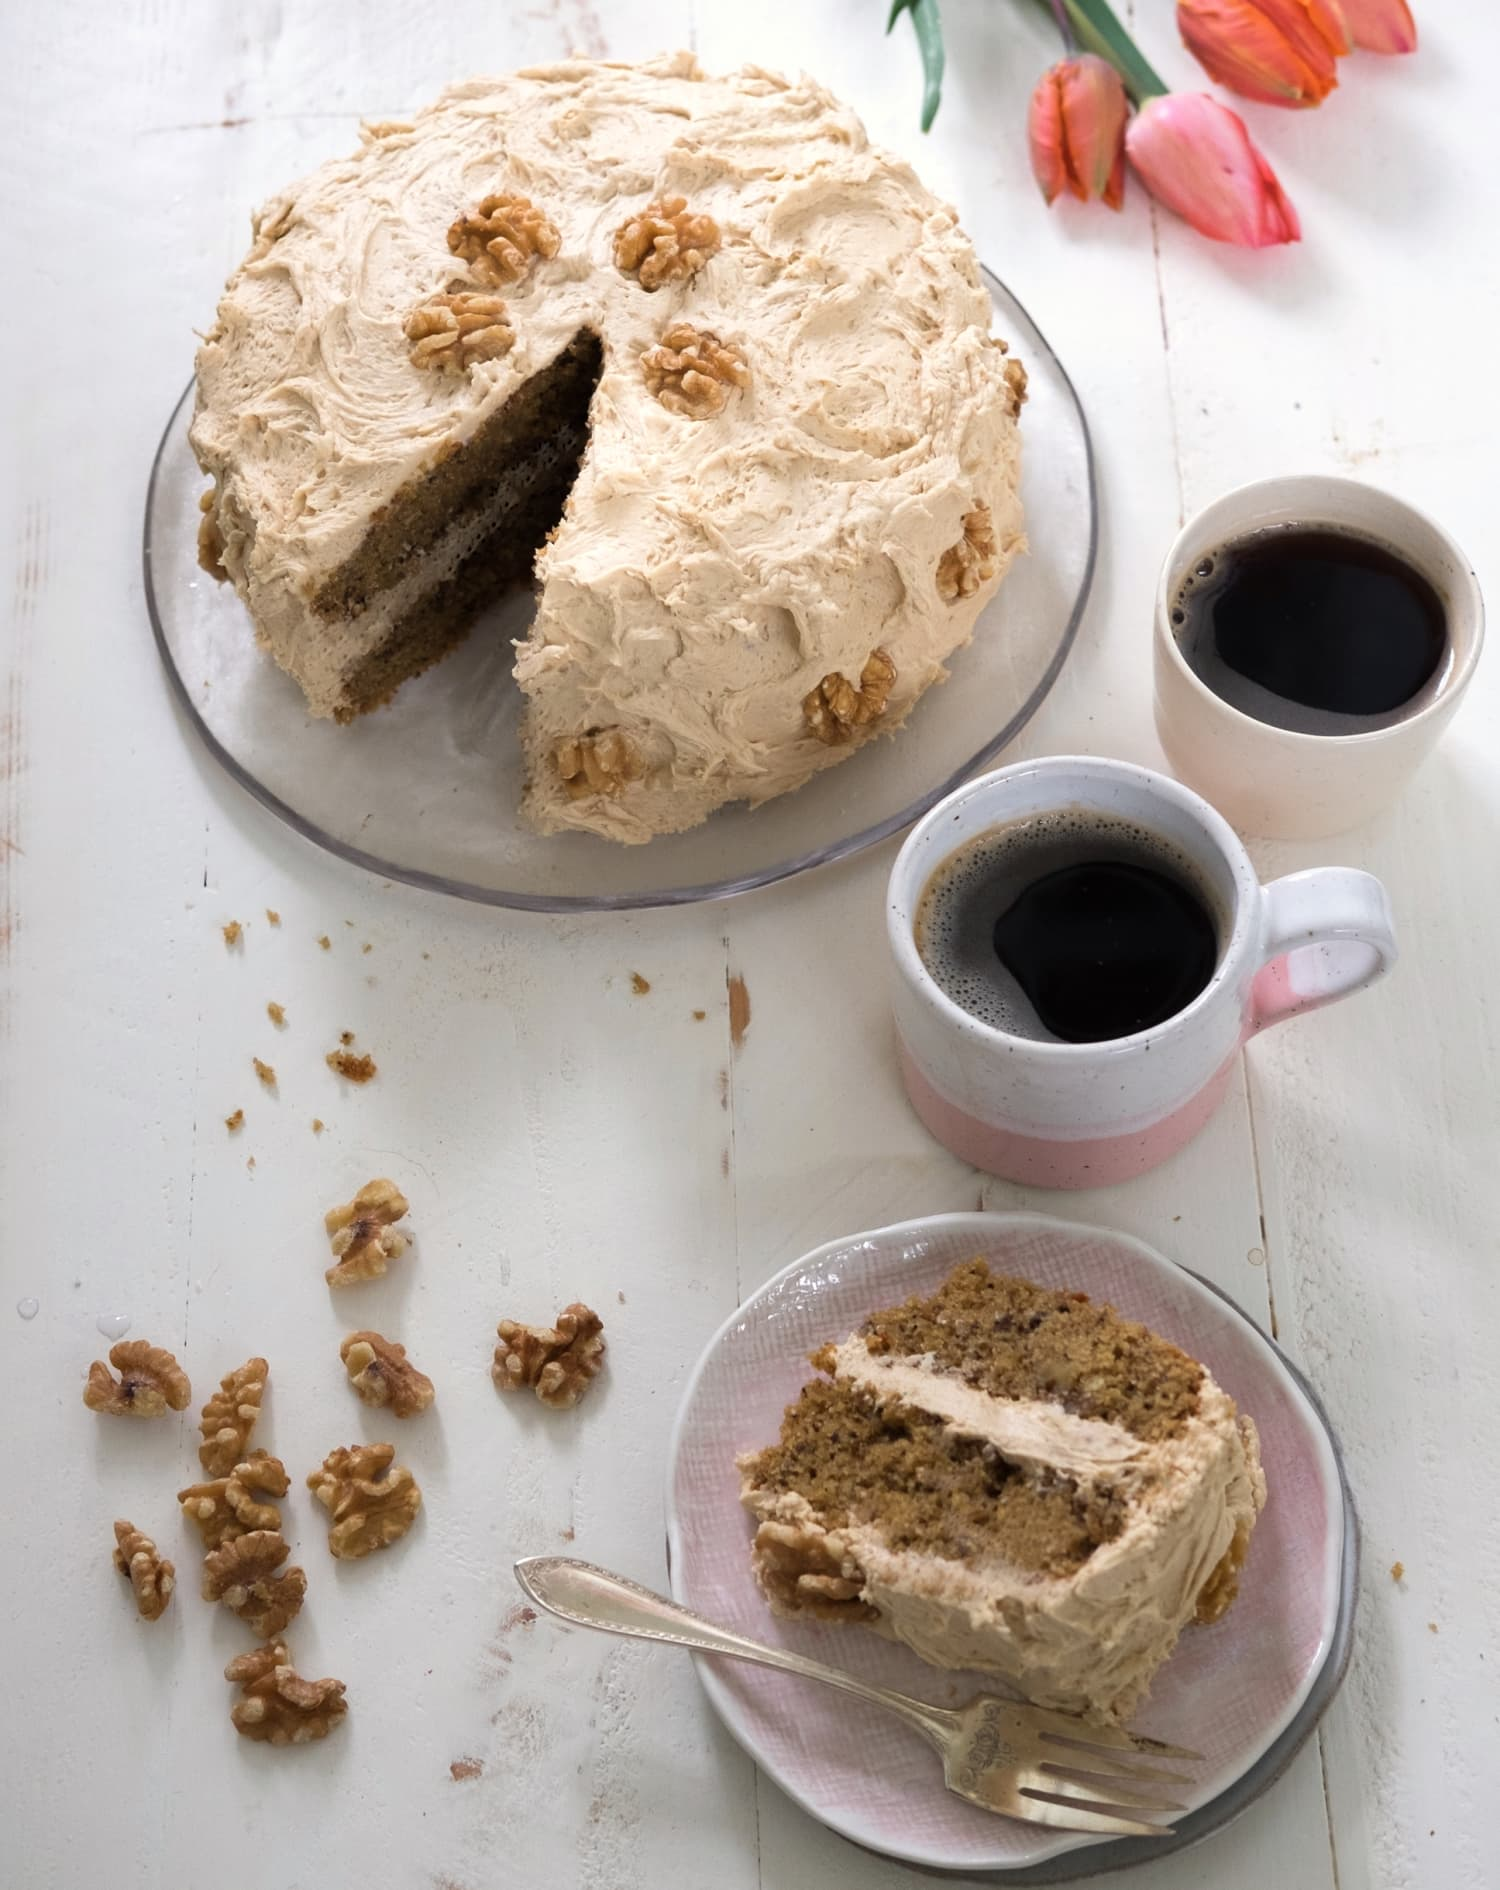 Recipe: Coffee and Walnut Cake